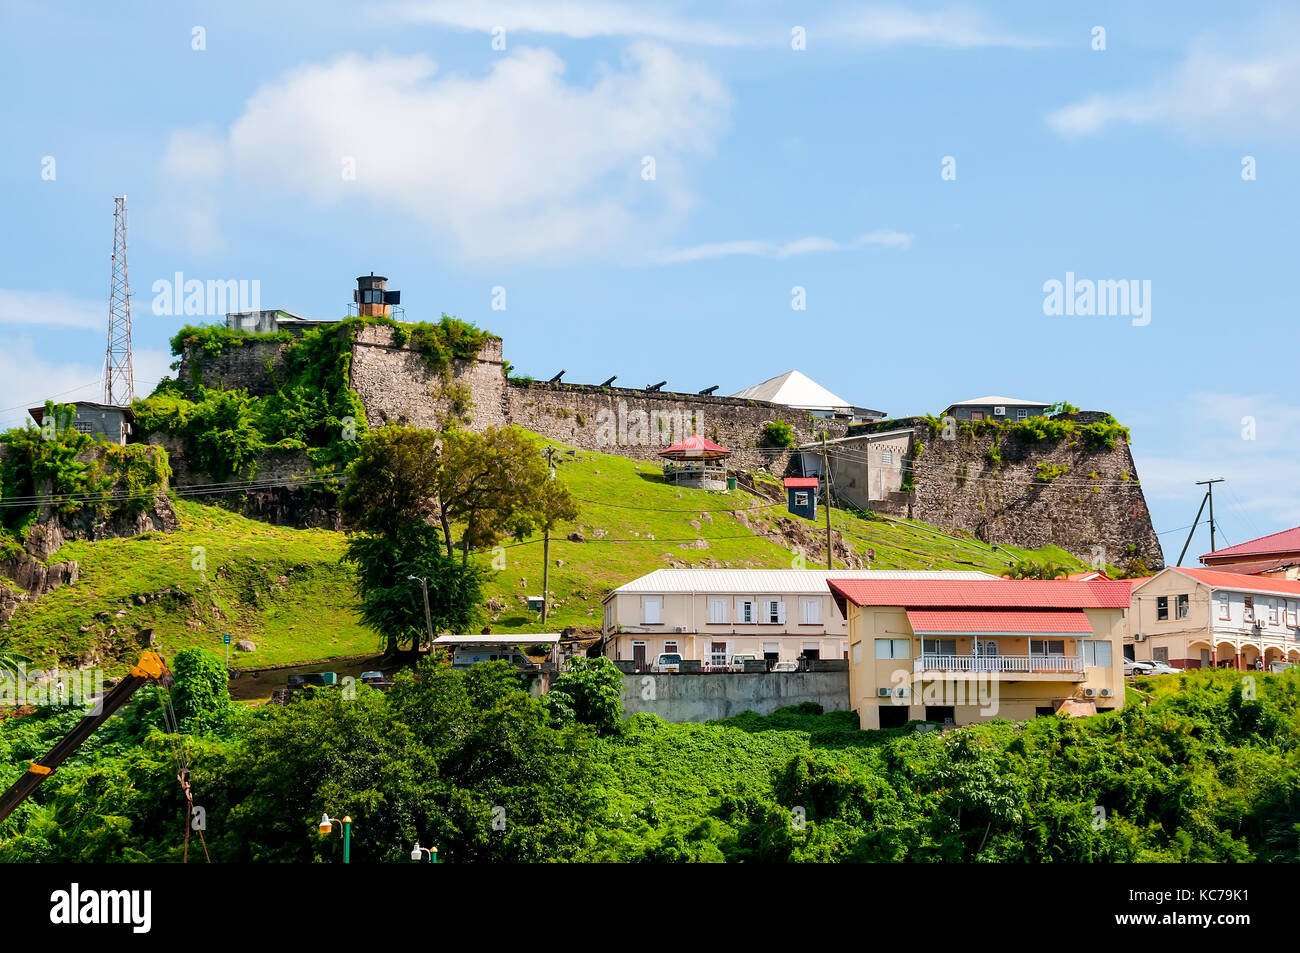 Historic Fort George a star-shaped masonry fort built 1705-1710 sits above harbor at St. George's Grenada - Stock Image